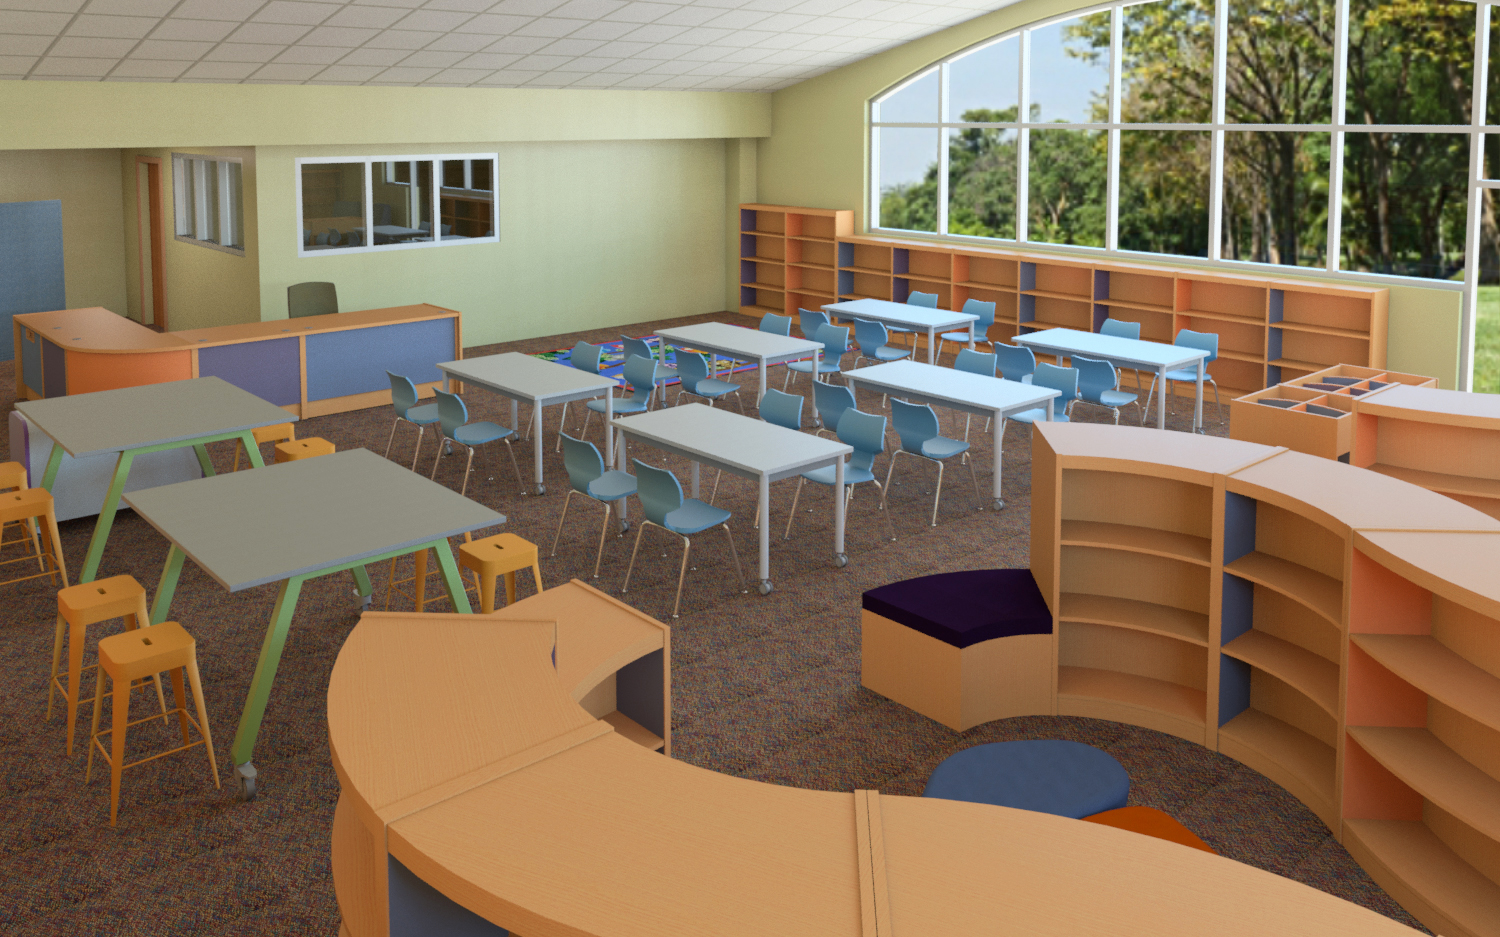 Elementary library learning environment